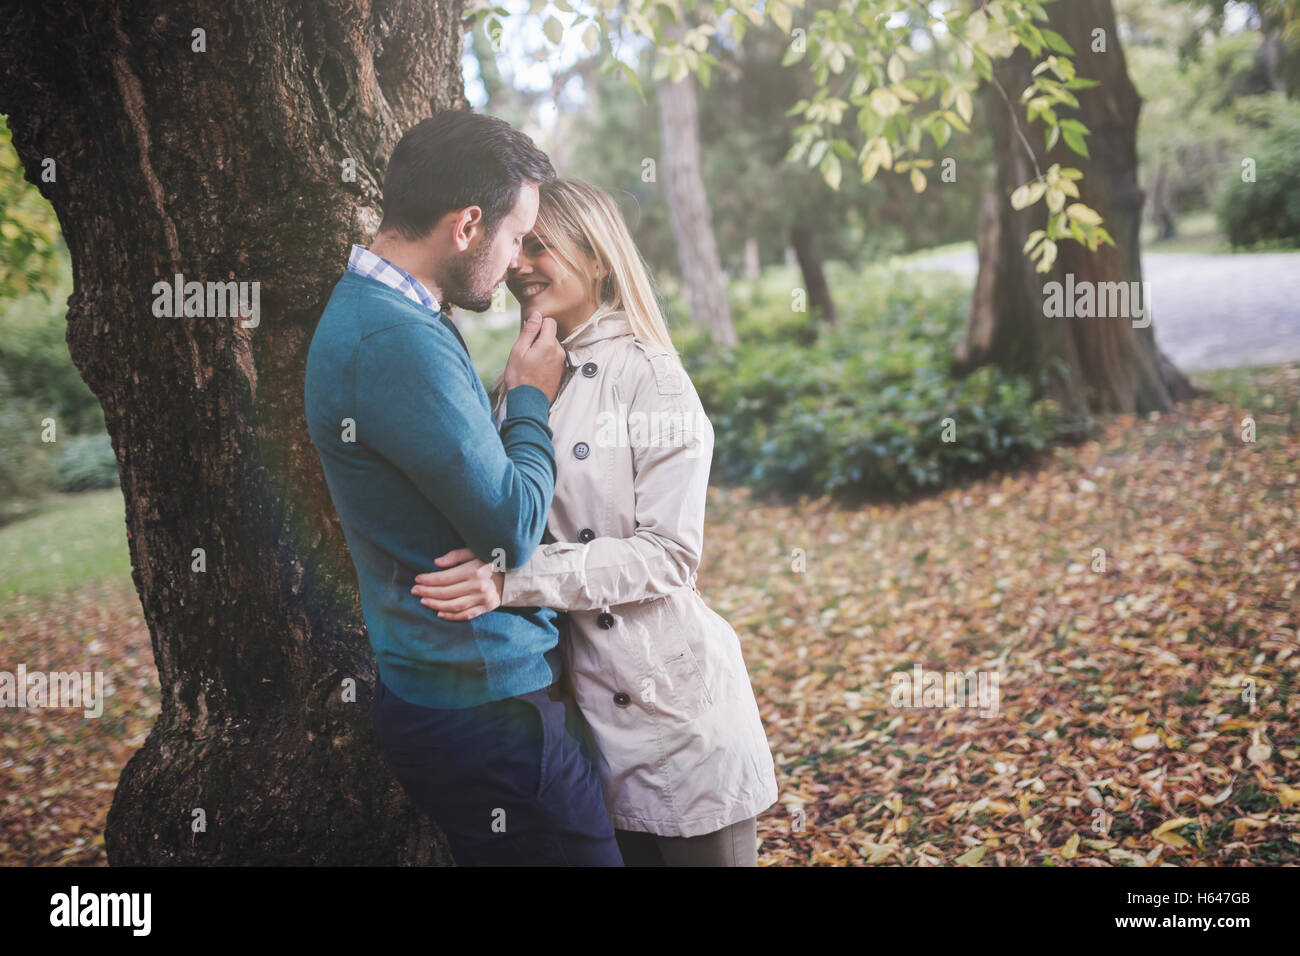 Loving happy couple walking in park - Stock Image